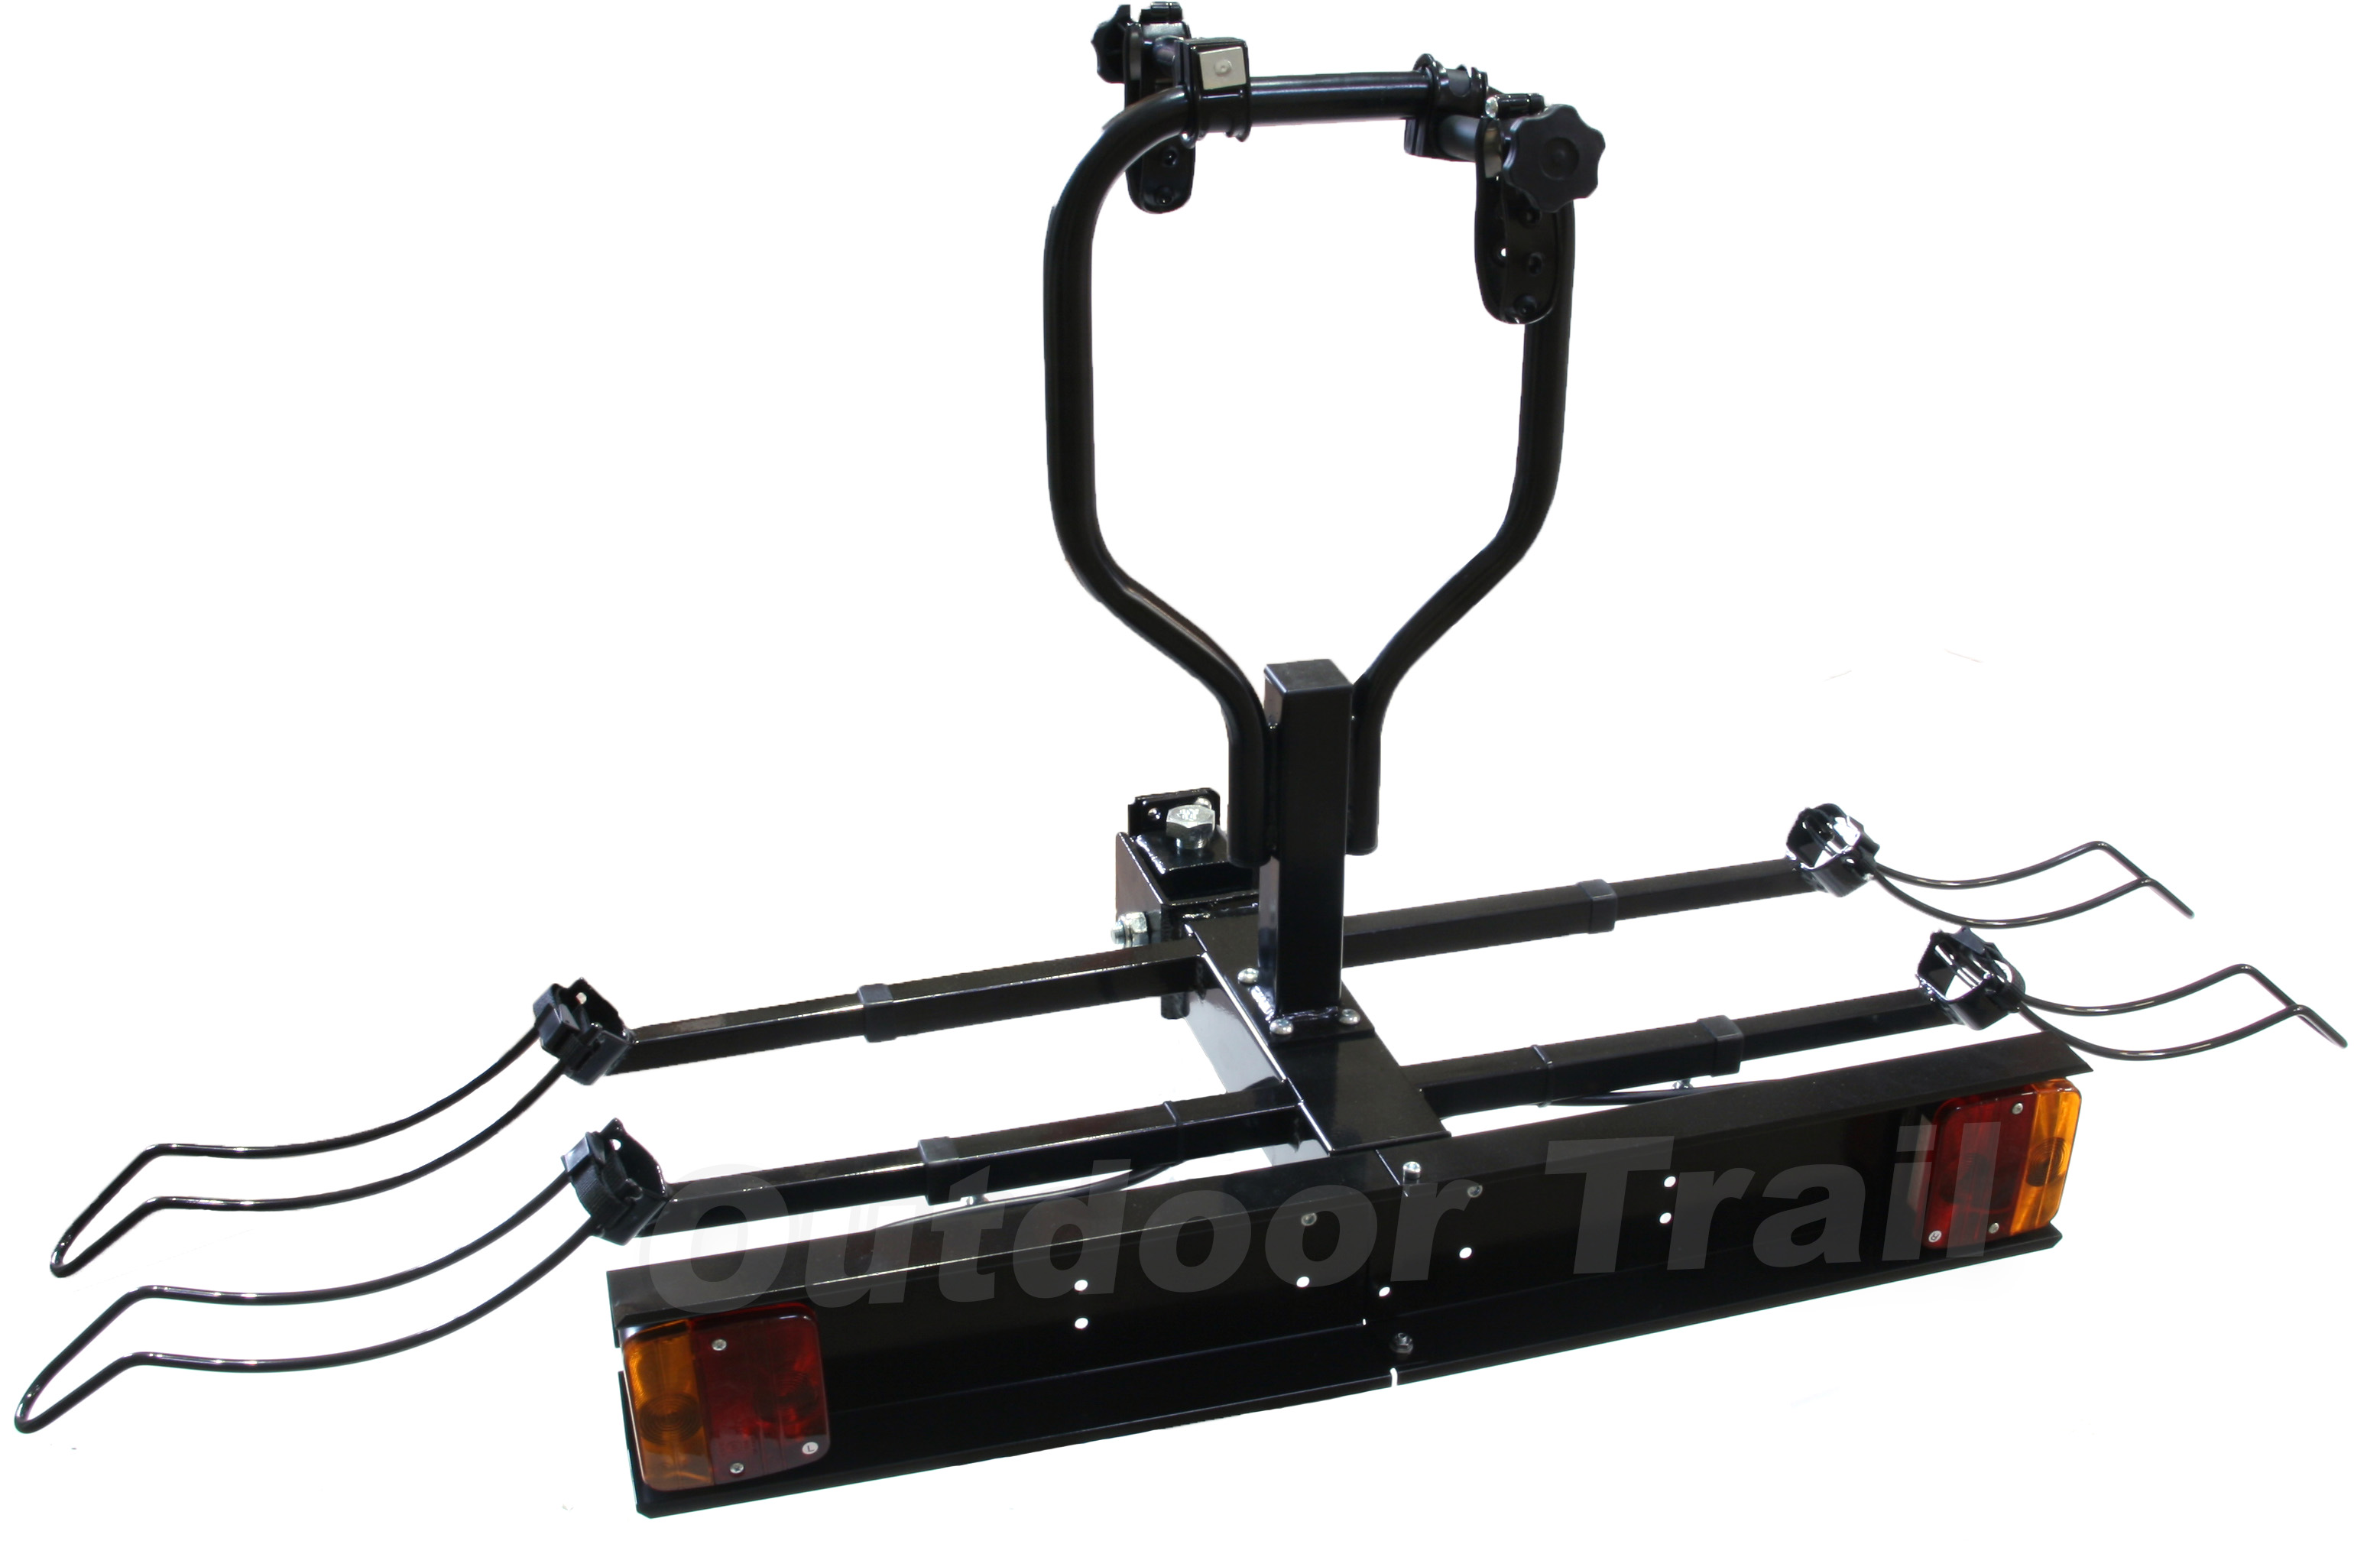 towbar 2 cycle tiltable bike rack carrier with lighting board